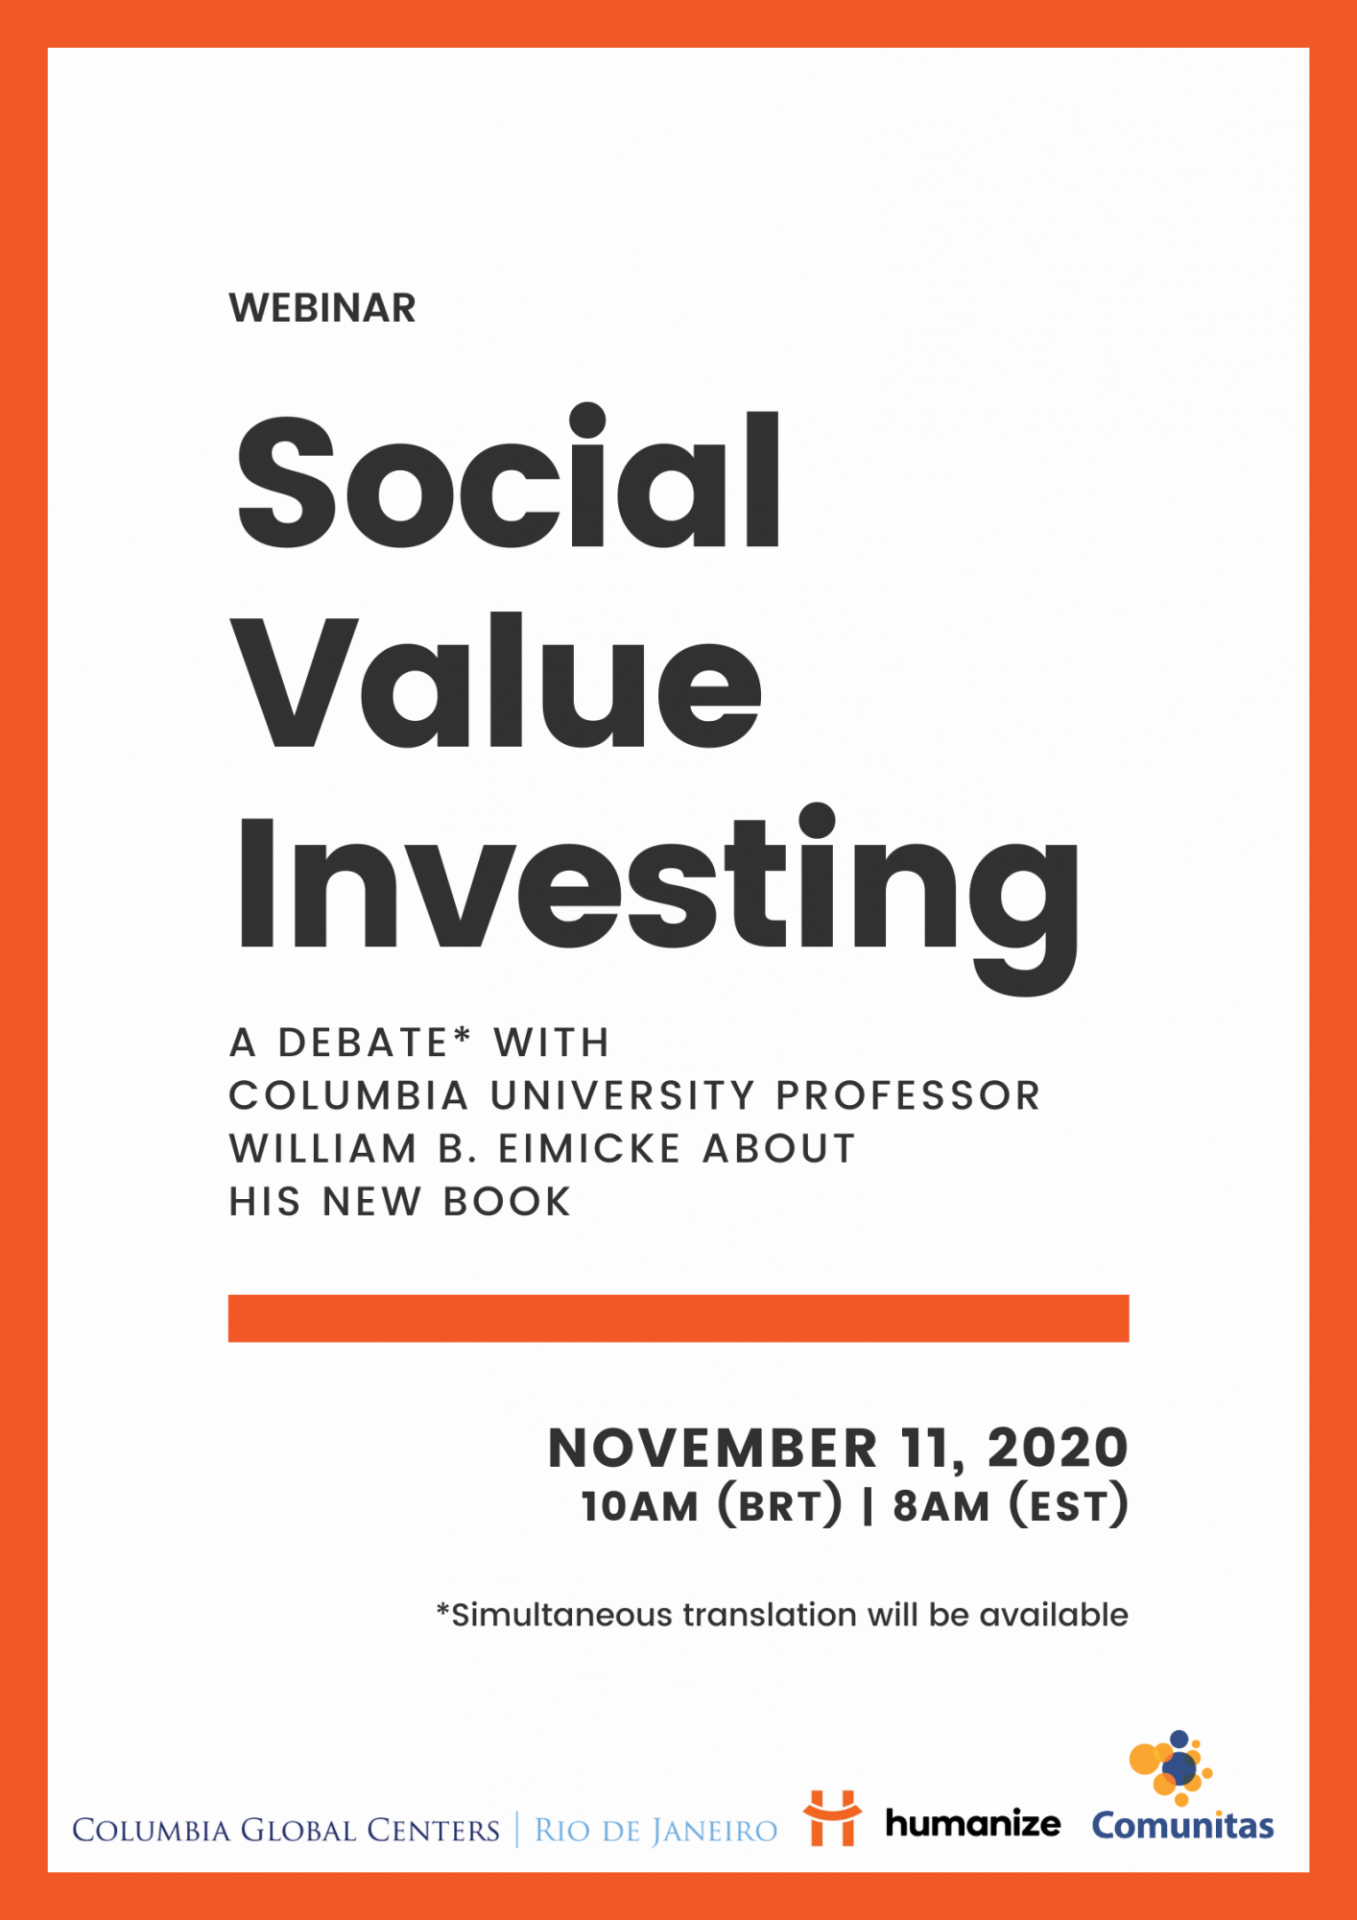 social value investing by william b. eimicke